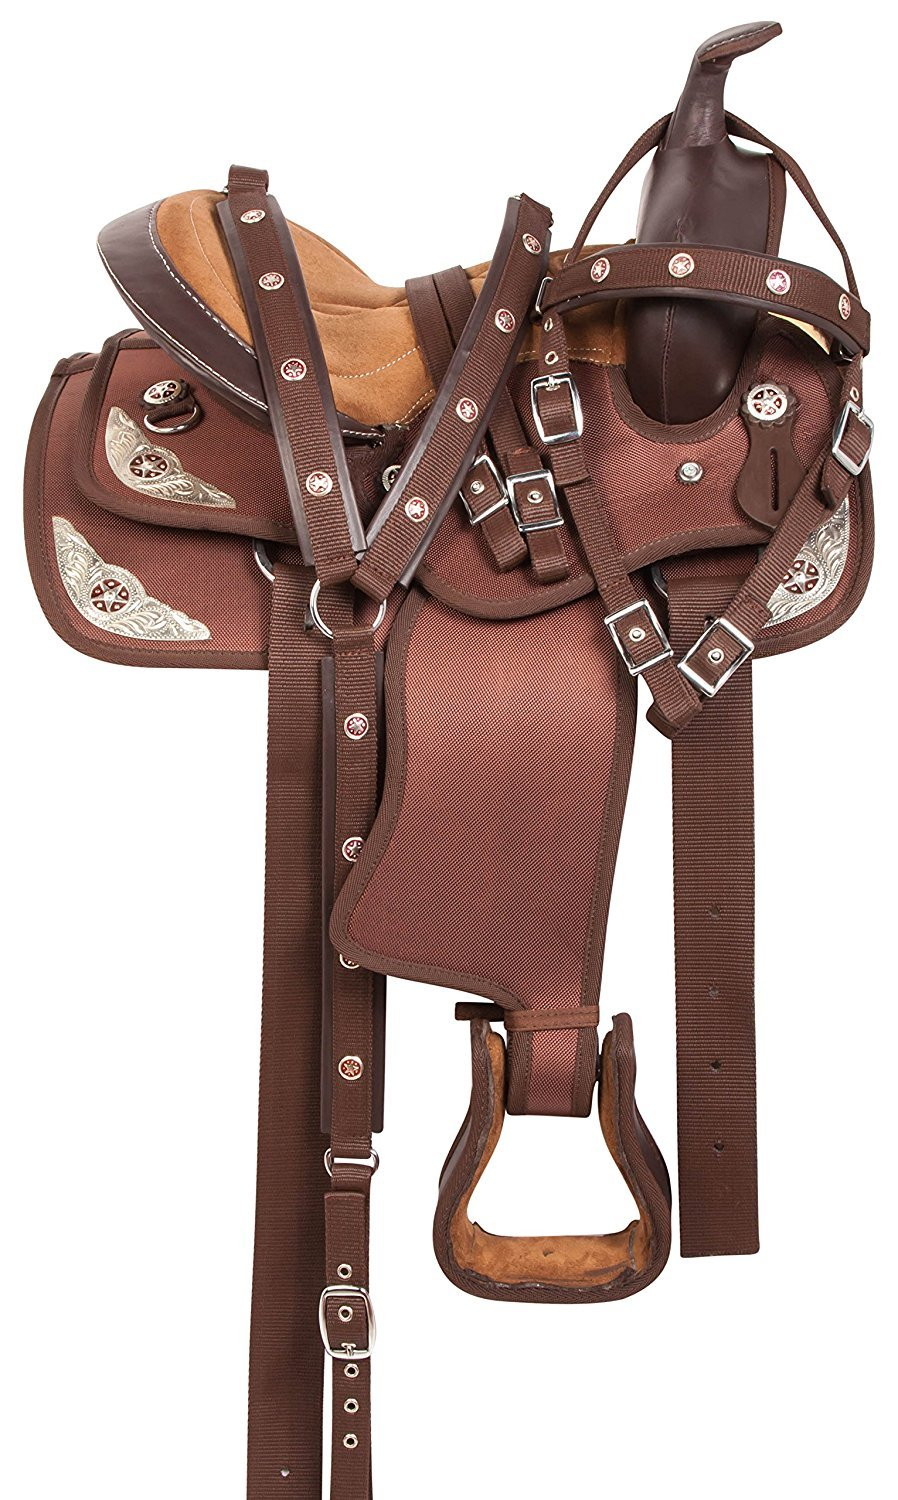 Brown 18 Inch Seat Brown 18 Inch Seat Manaal Enterprises Synthetic Western Horse Saddle Barrel Racing Tack + Headstall, Breast Collar Size 15  to 18  Inch Seat Available